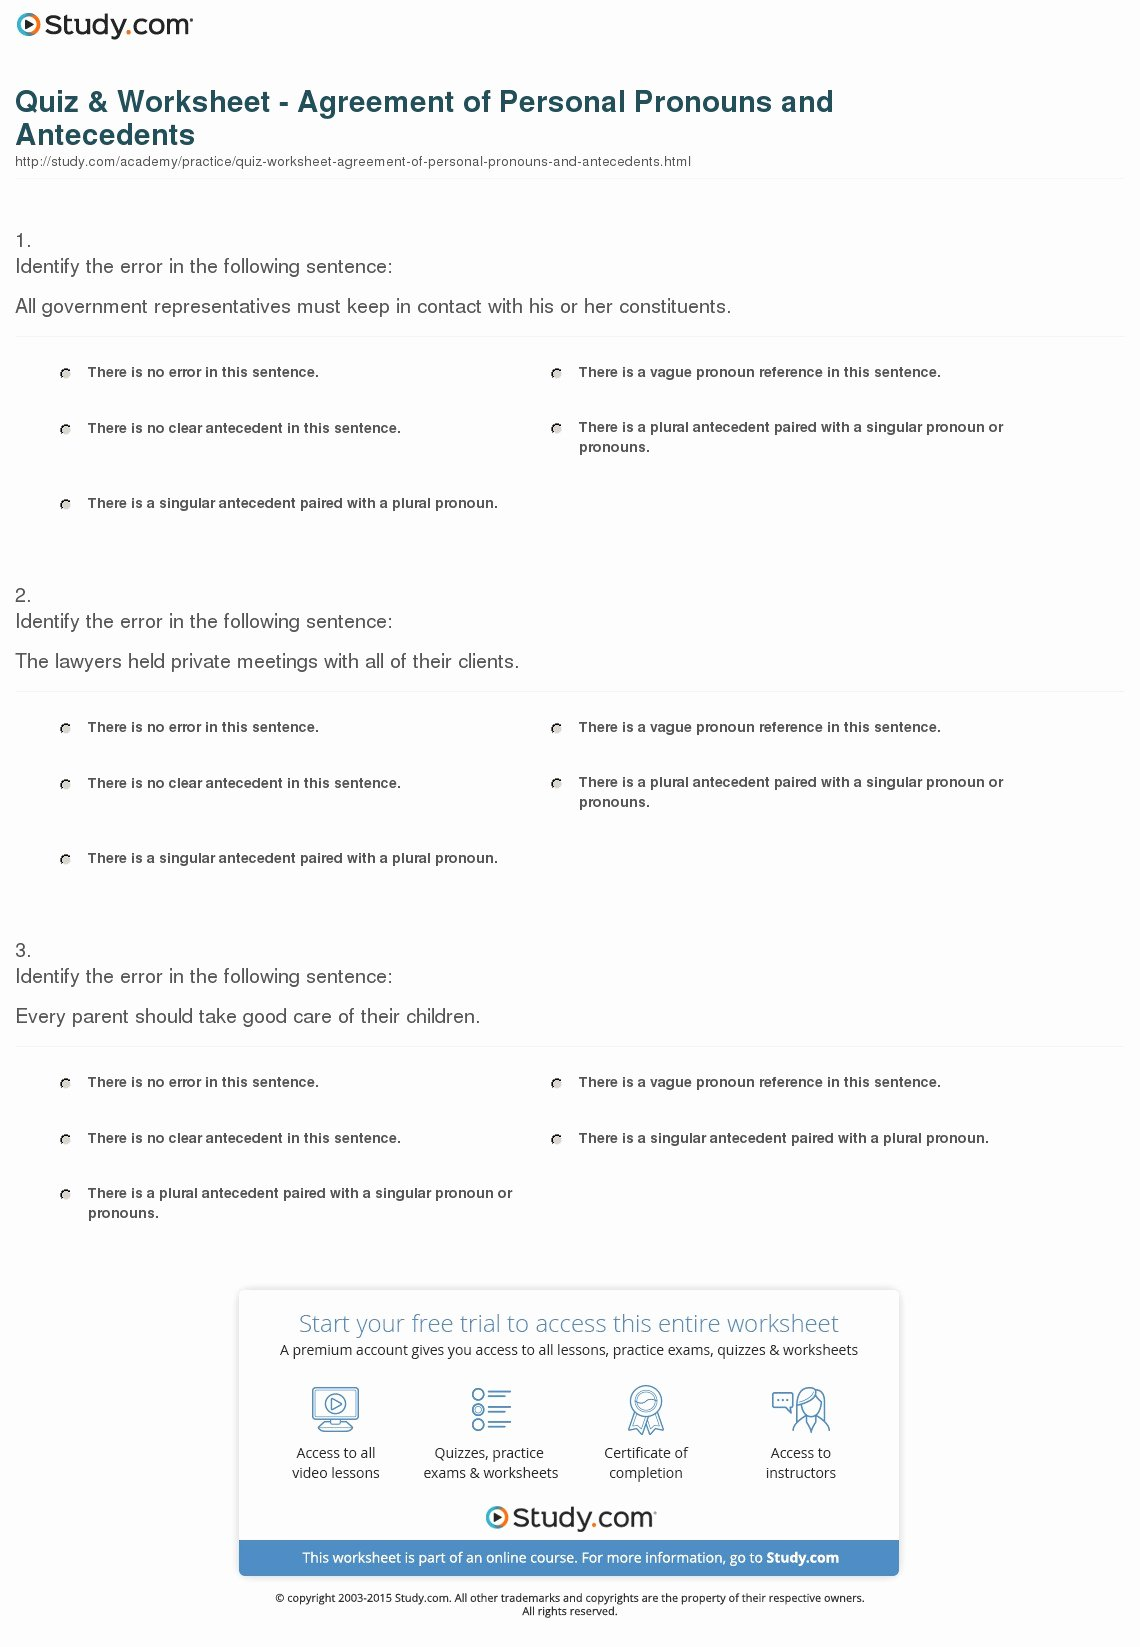 Pronoun Antecedent Agreement Worksheet Unique Quiz & Worksheet Agreement Of Personal Pronouns and